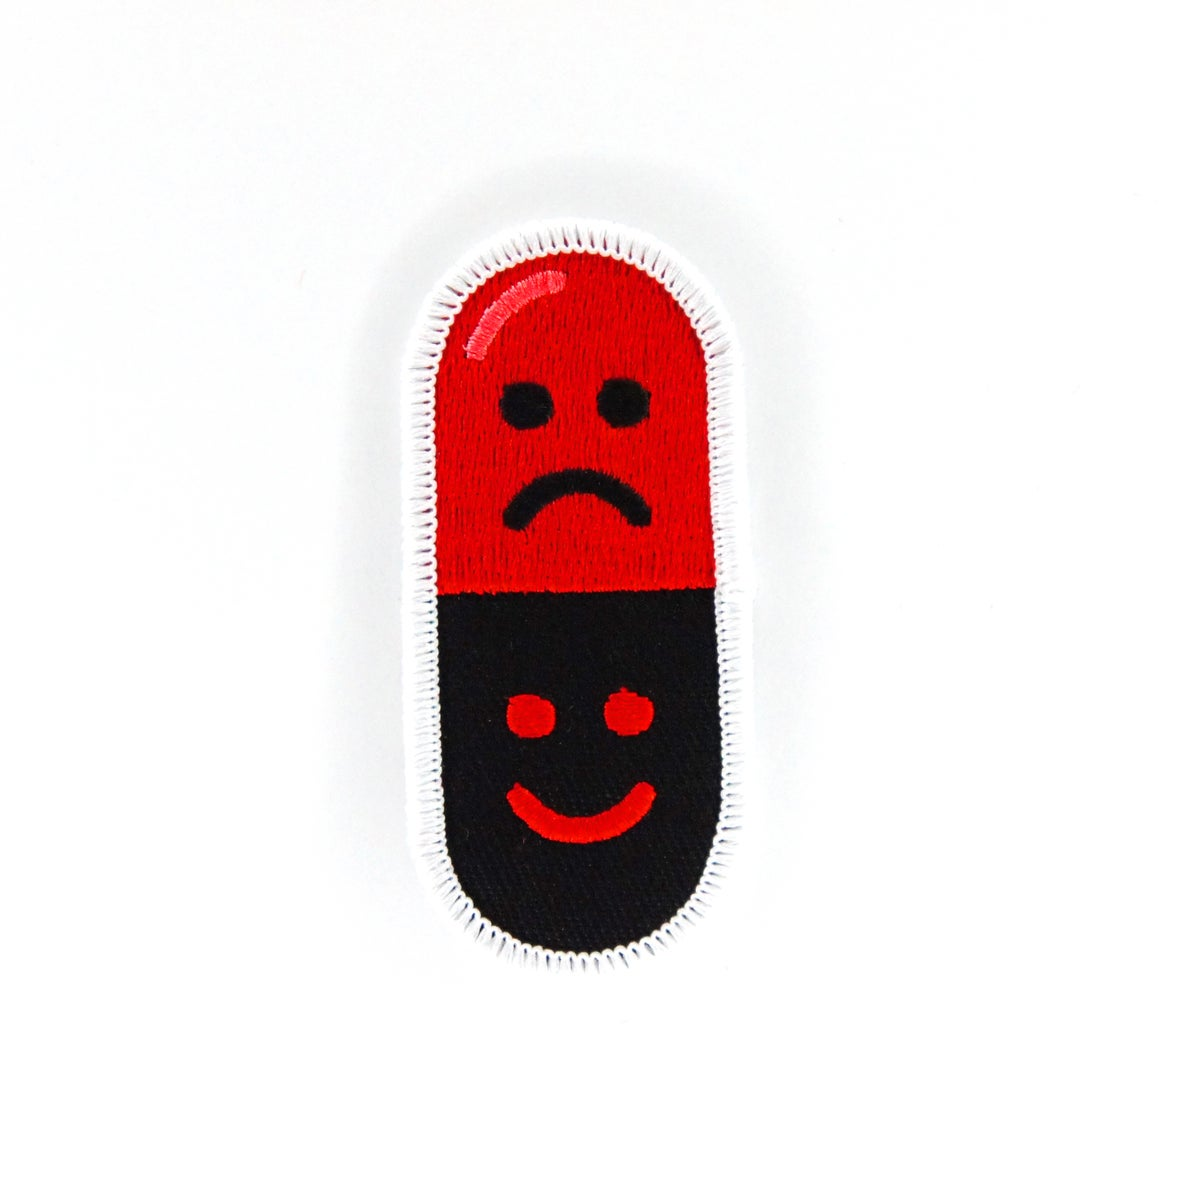 Mood Swing Pill Iron-On Patch